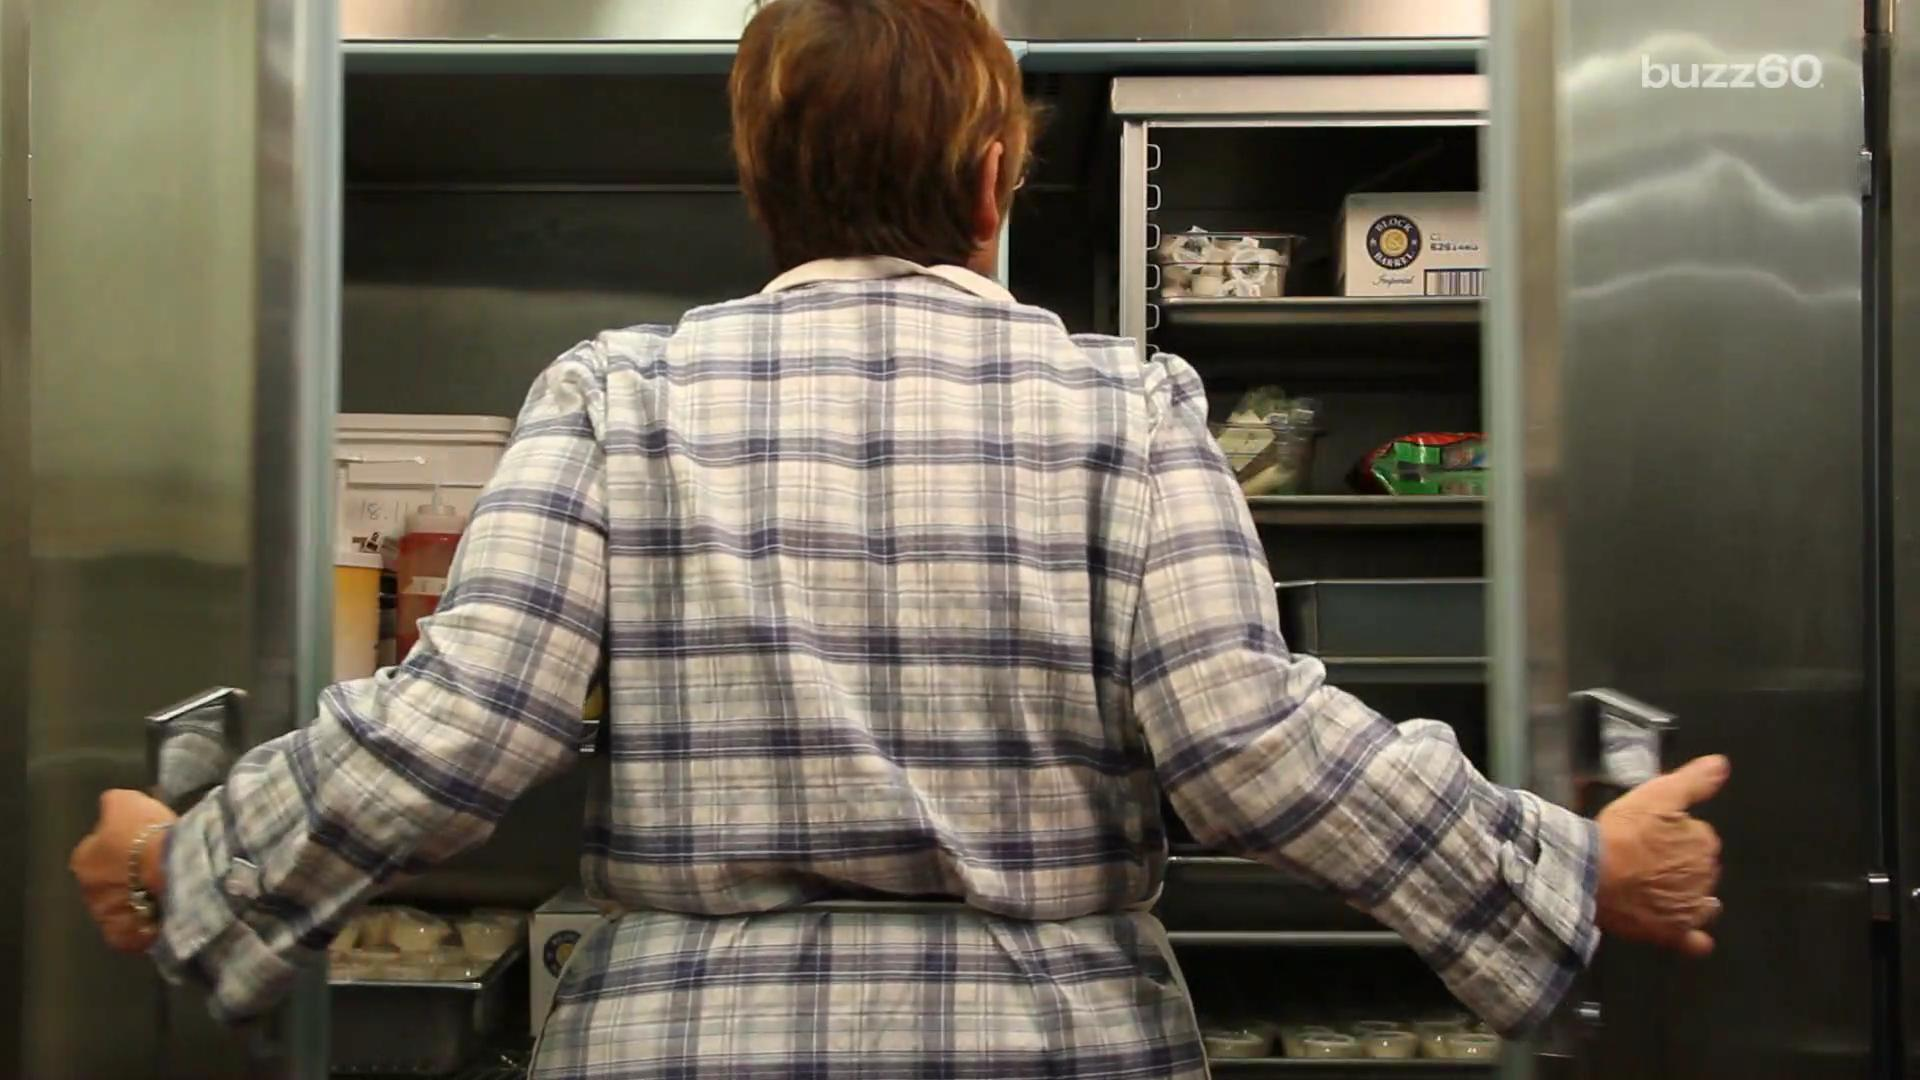 How to Get the Best Out of Your Fridge